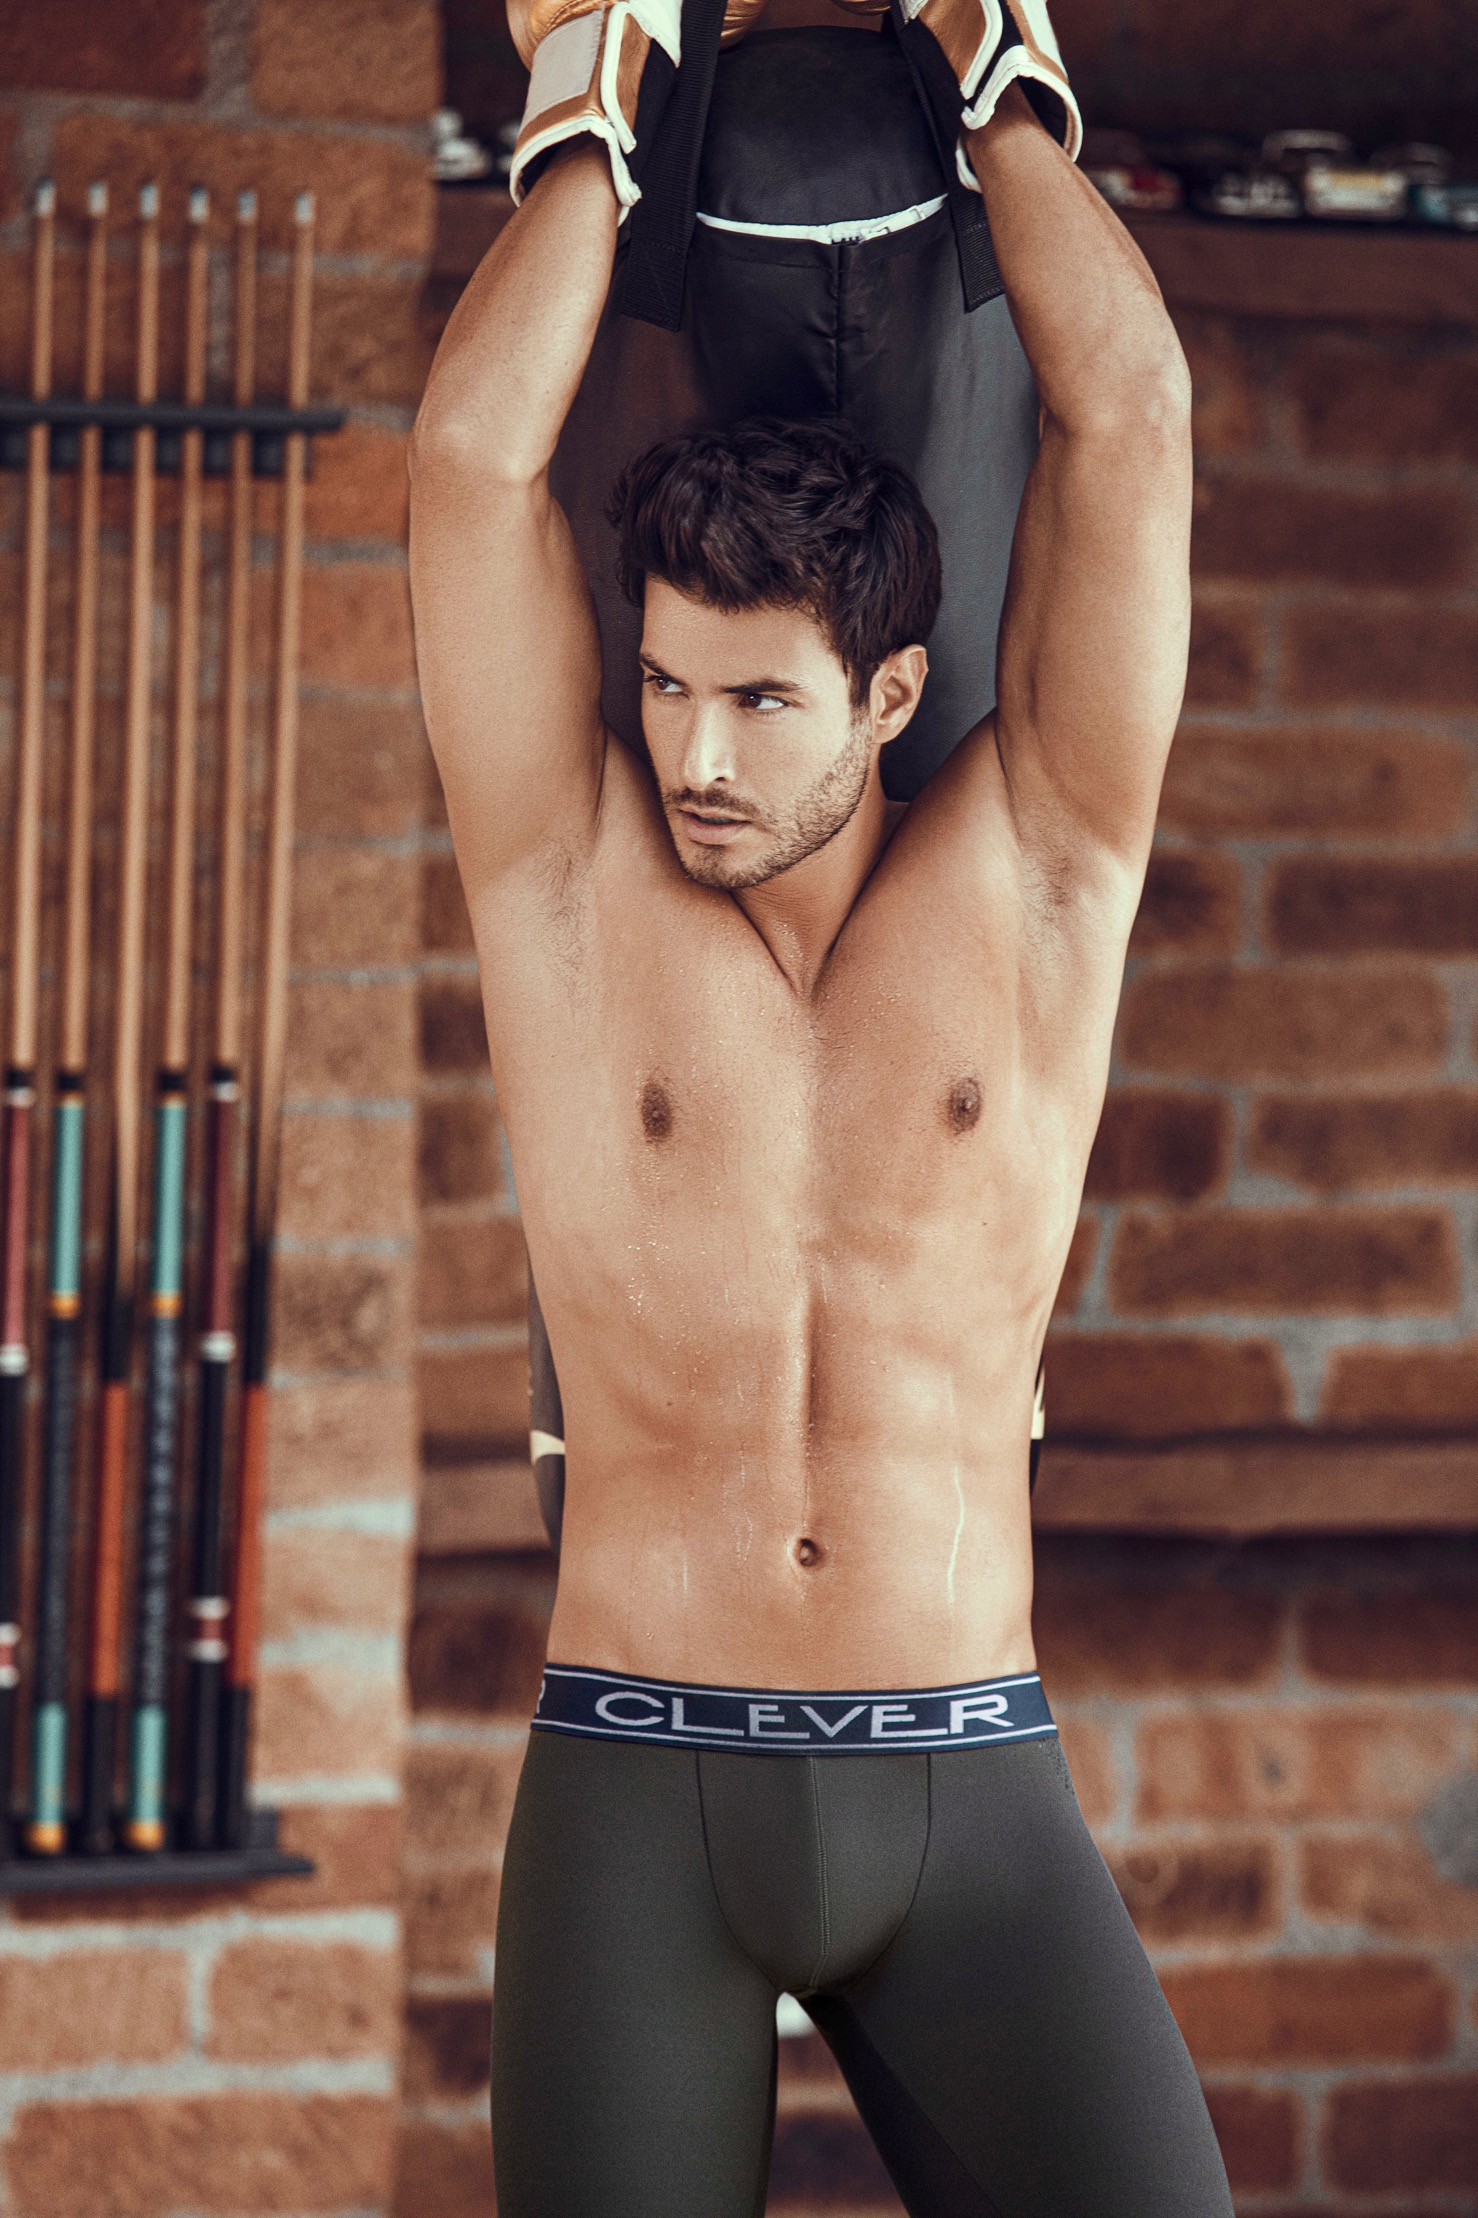 Brief Distraction featuring Clever Moda